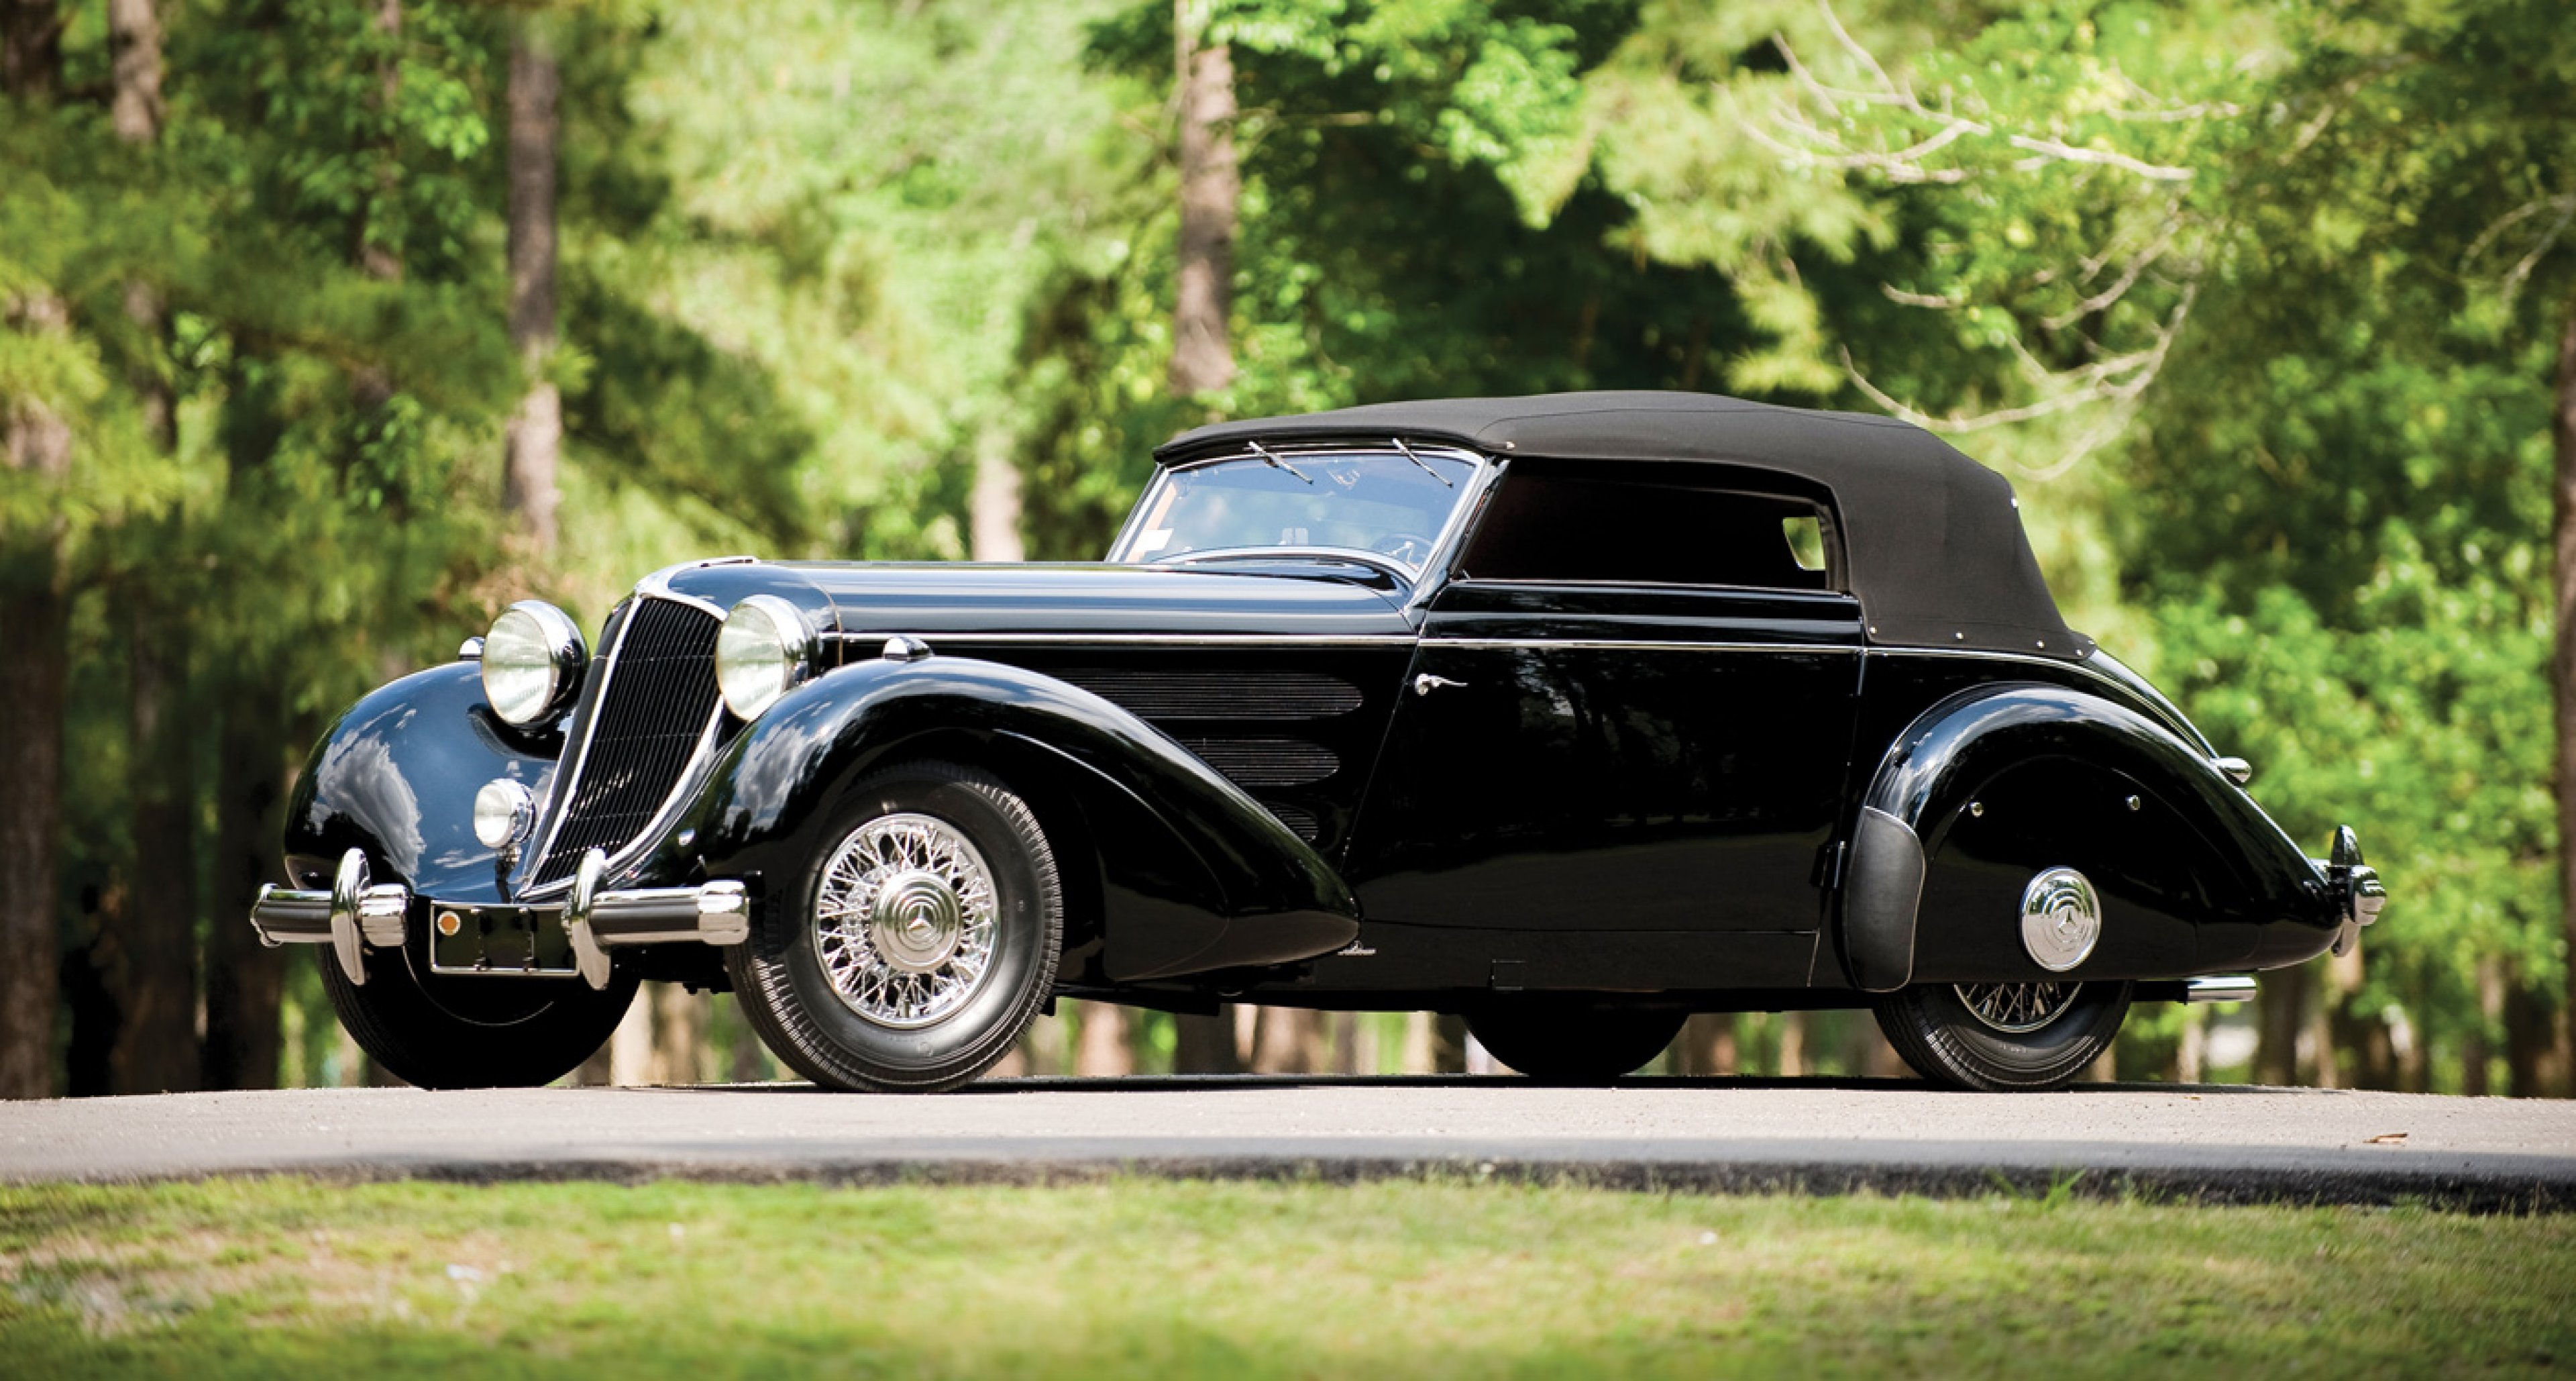 1936 Mercedes-Benz 540 K Special Cabriolet by Sindelfingen to be auctioned at RM's Monterey auction 2014